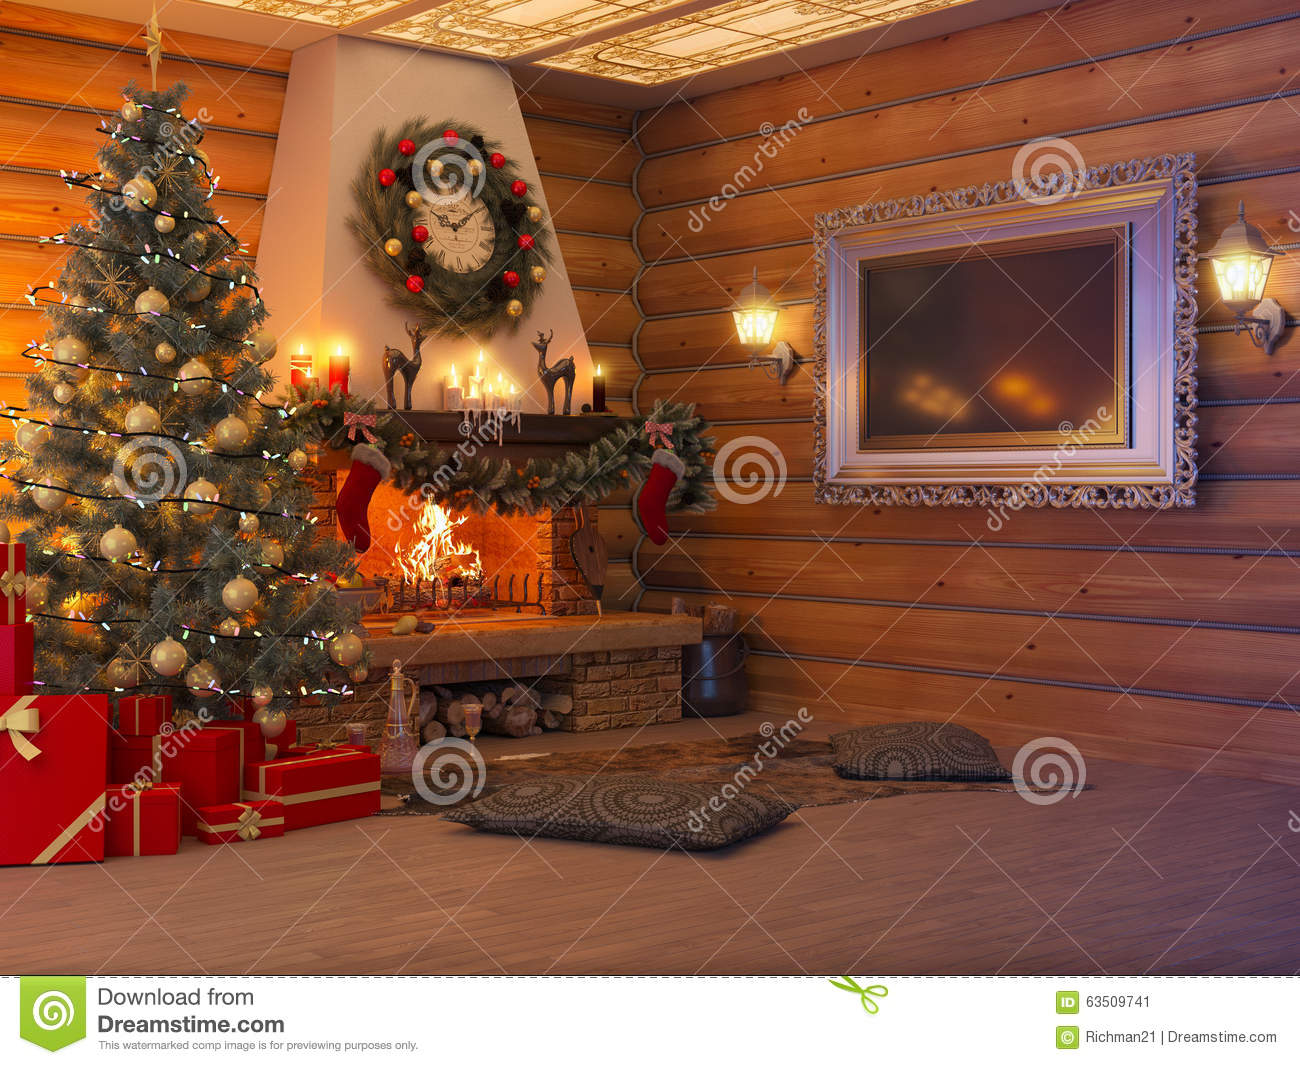 3d Illustration New Year Interior With Christmas Tree Presents Stock Illustration